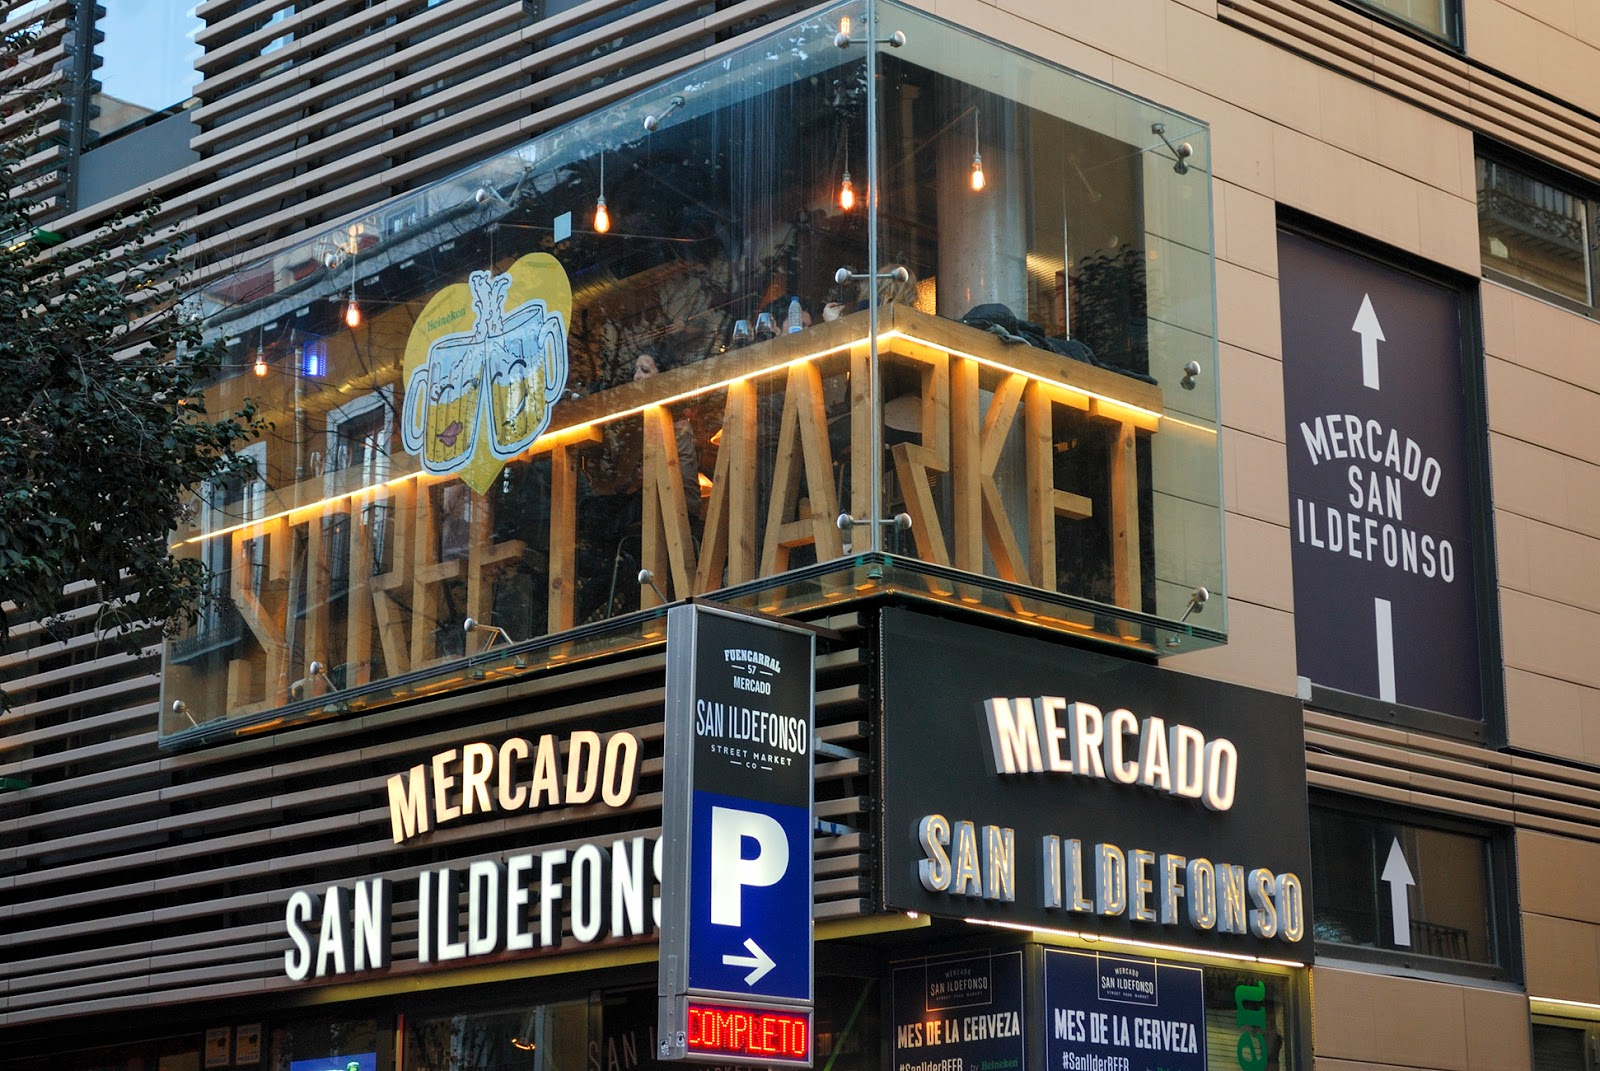 mercado san ildefonso madrid food market